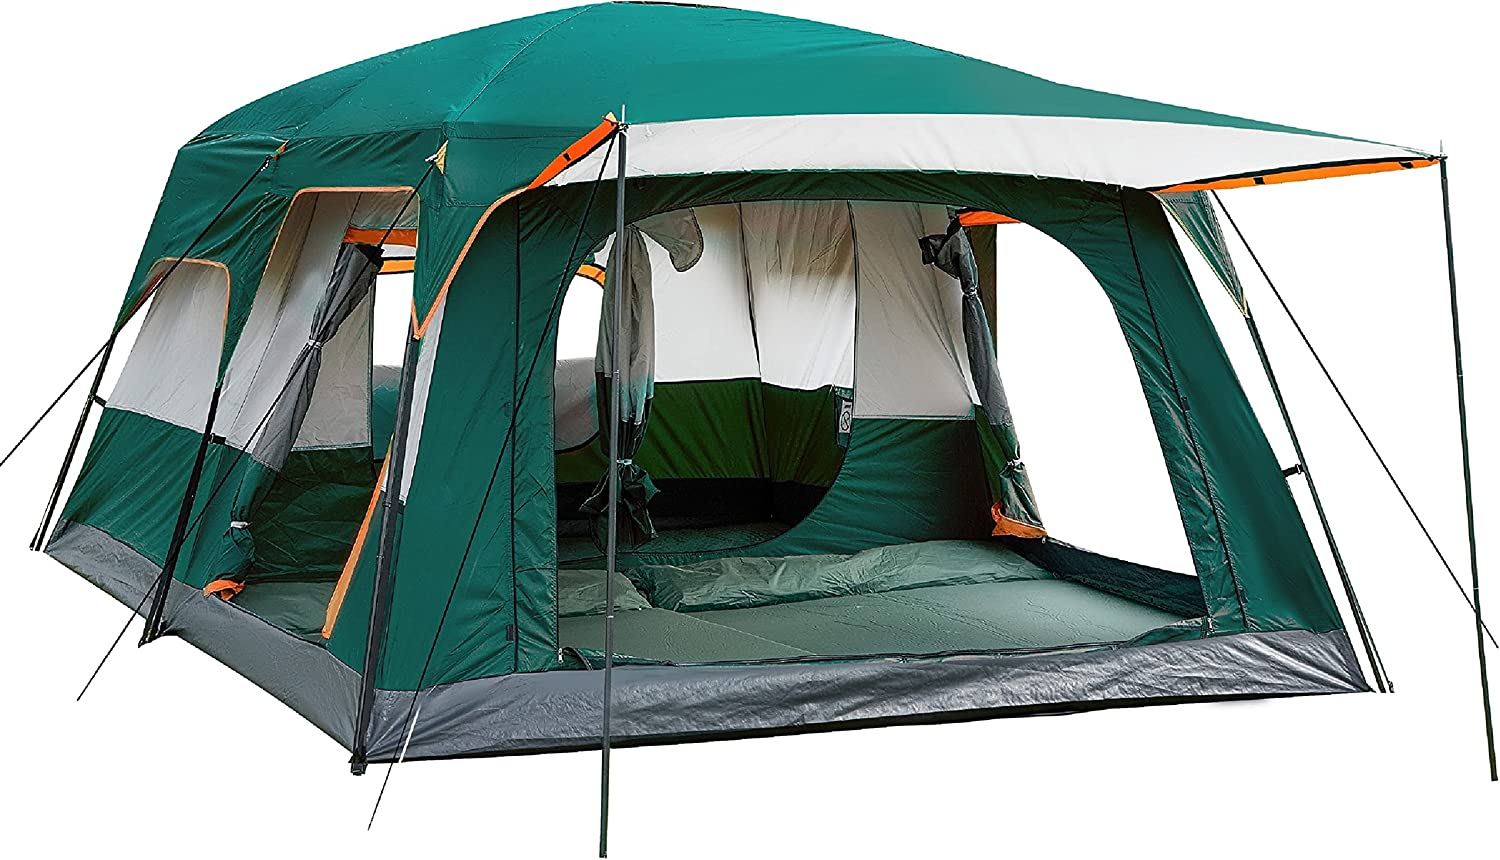 Buy KTT Extra Large Tent 12 Person(Style-B),Family Cabin Tents,2  Rooms,Straight Wall,3 Doors and 3 Windows with Mesh,Waterproof,Double Layer,Big  Tent for Outdoor,Picnic,Camping,Family,Friends Gathering Online in  Indonesia. B08MDTJTZP